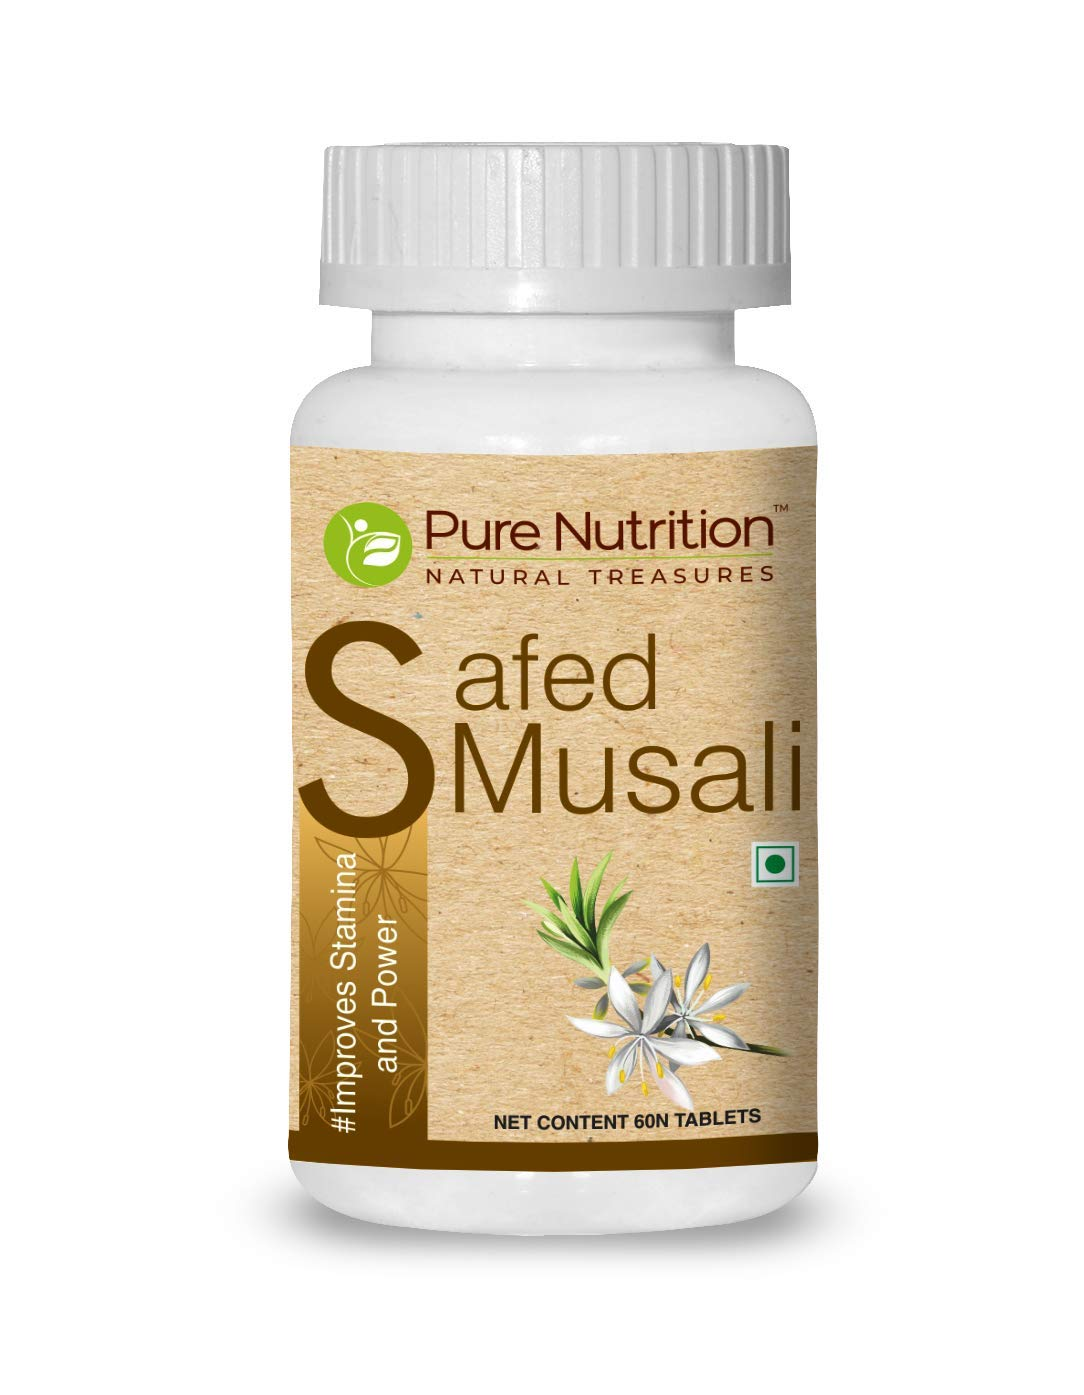 Pure Nutrition Safed Musli Root Extract 500mg (Asparagus Adscendens 40% Saponins) - 60 Veg Tab - Non GMO | Gluten Free